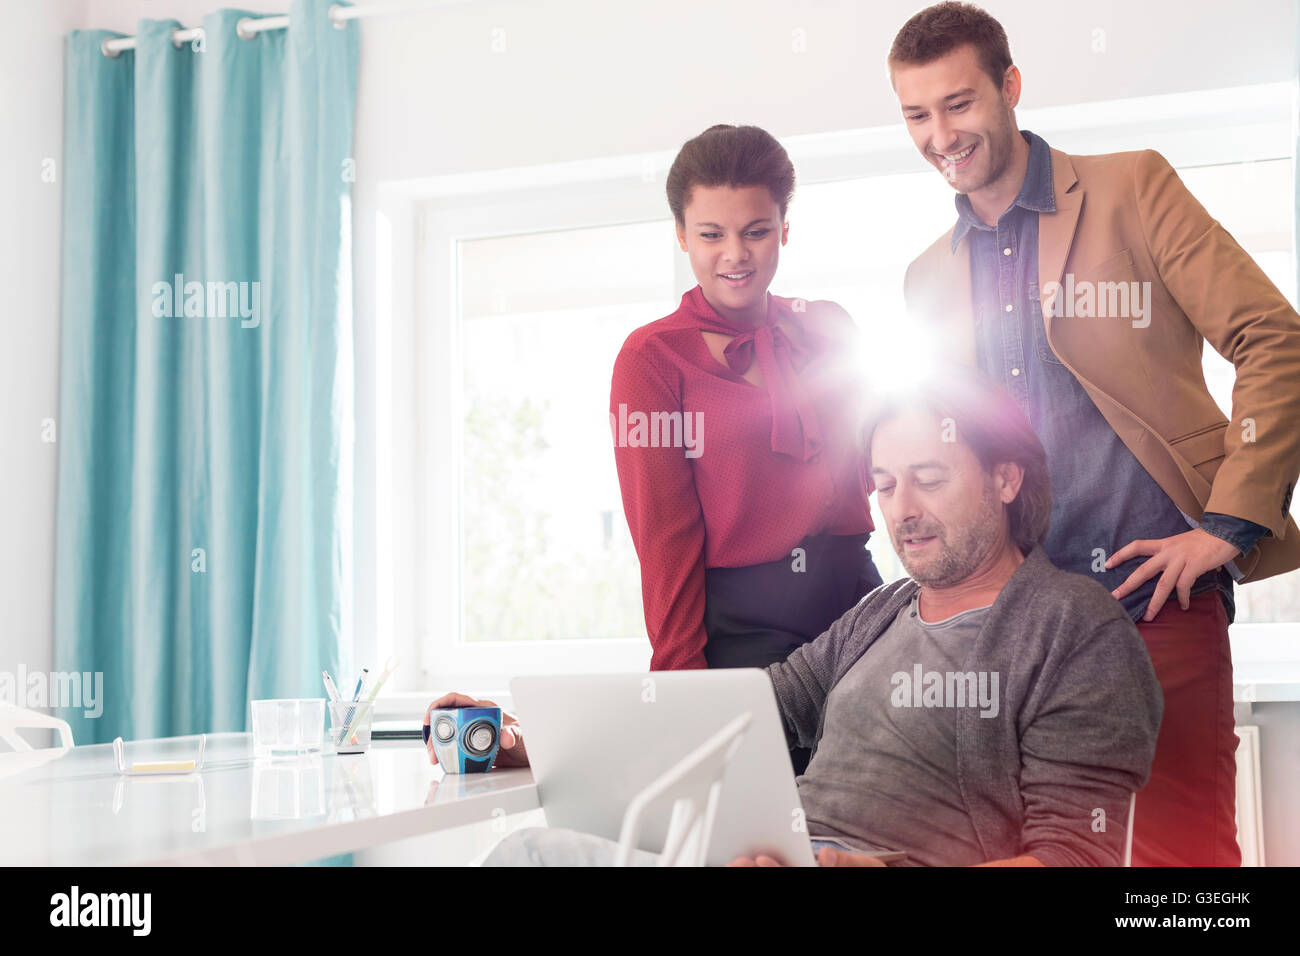 Business people sharing laptop in office meeting - Stock Image